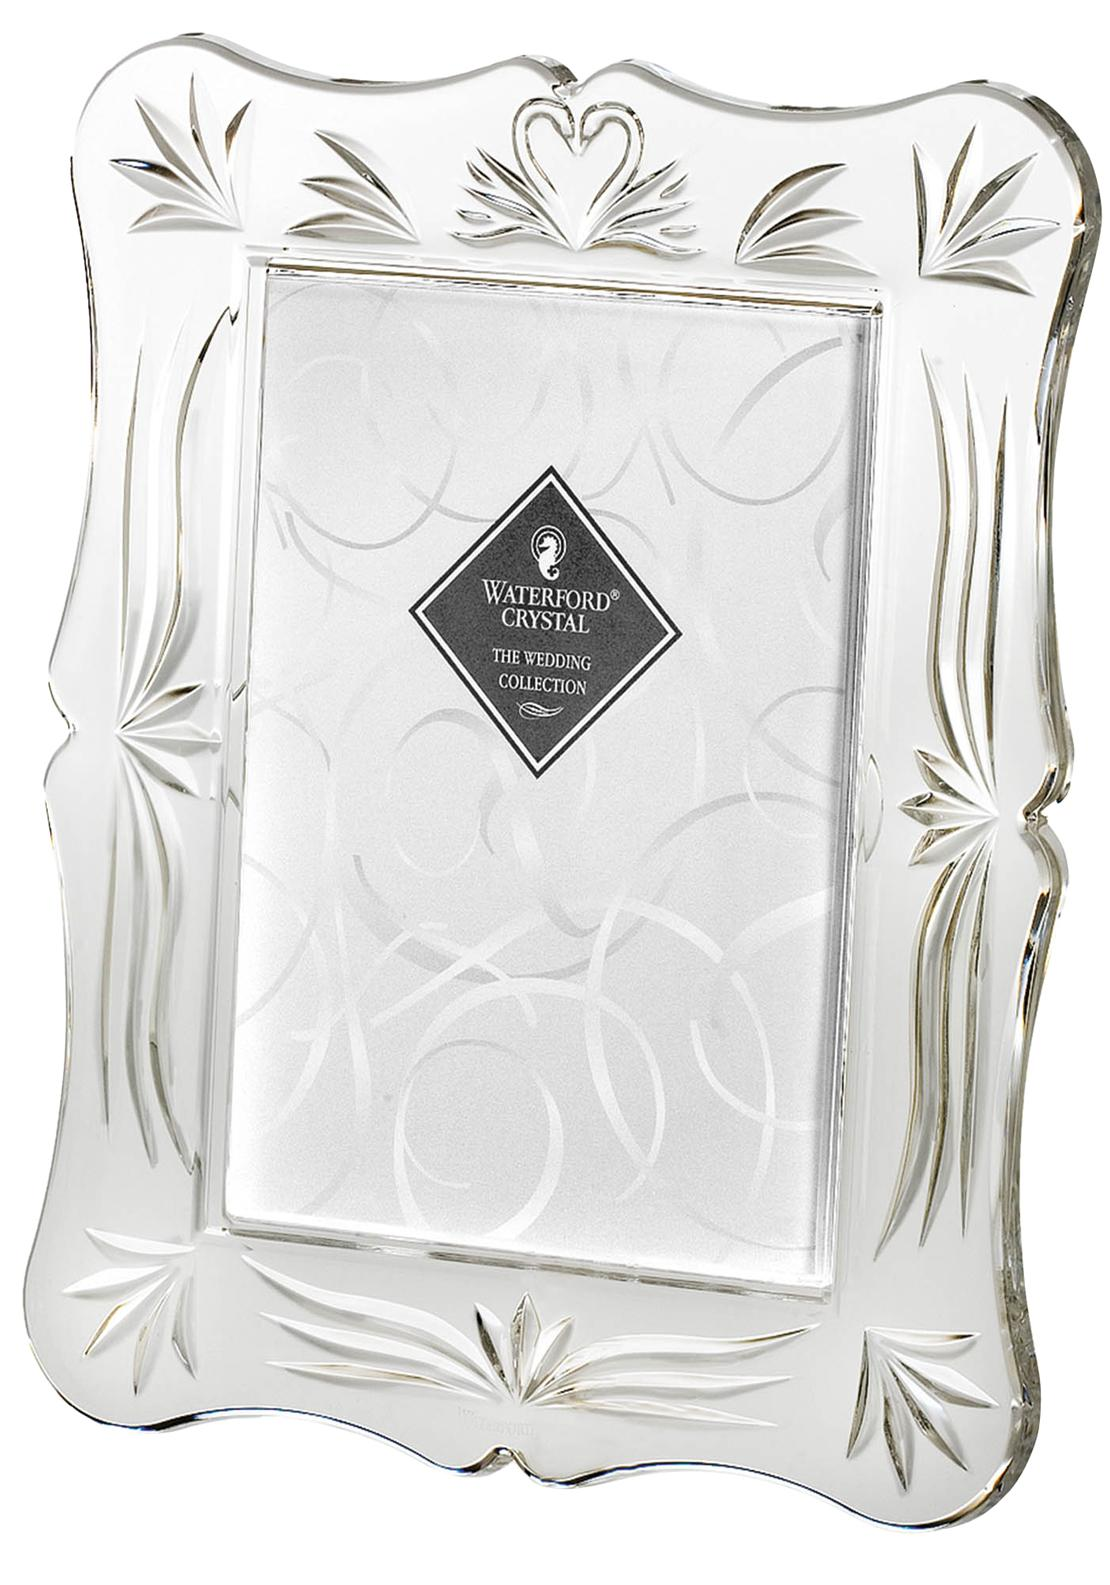 Waterford Crystal Wedding Photo Frame, 5 x 7 inches